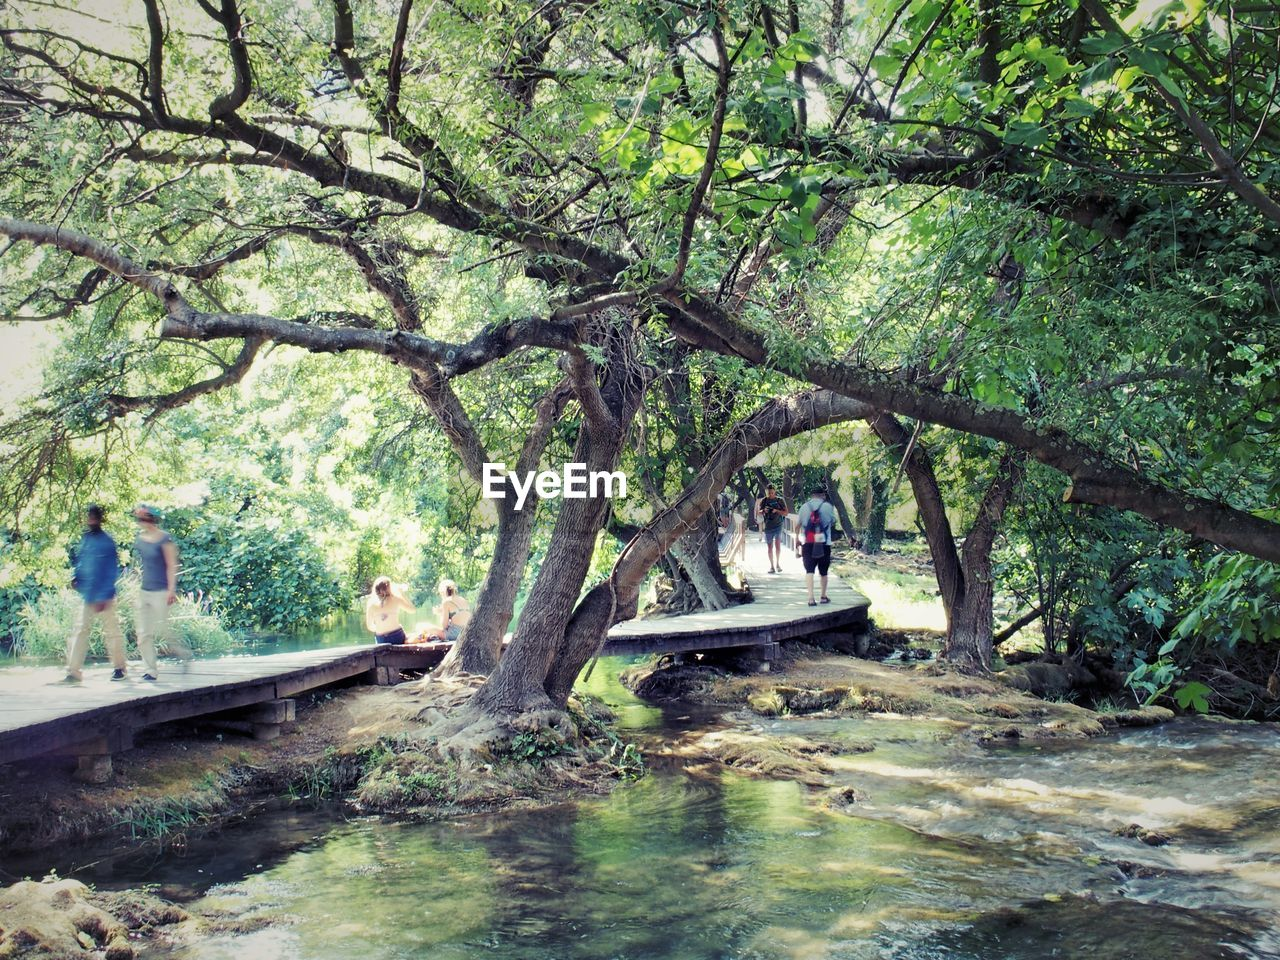 VIEW OF TREES IN RIVER